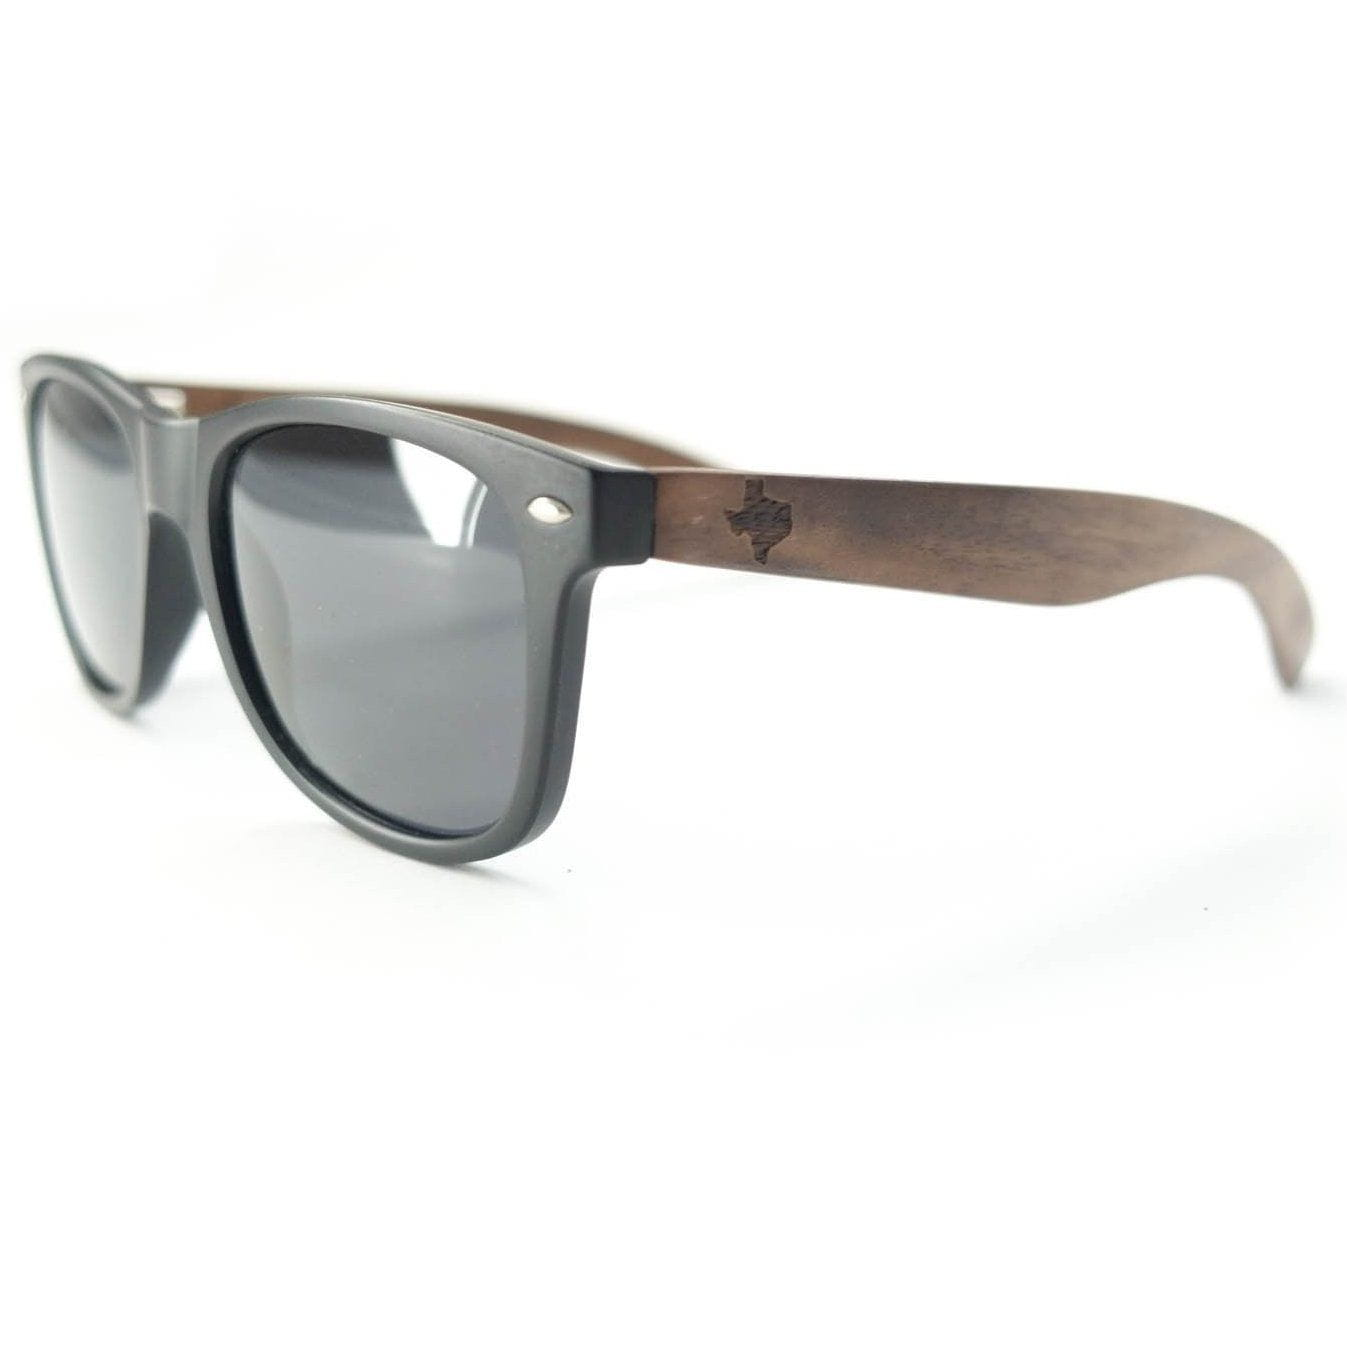 state of texas classic black walnut sunglasses